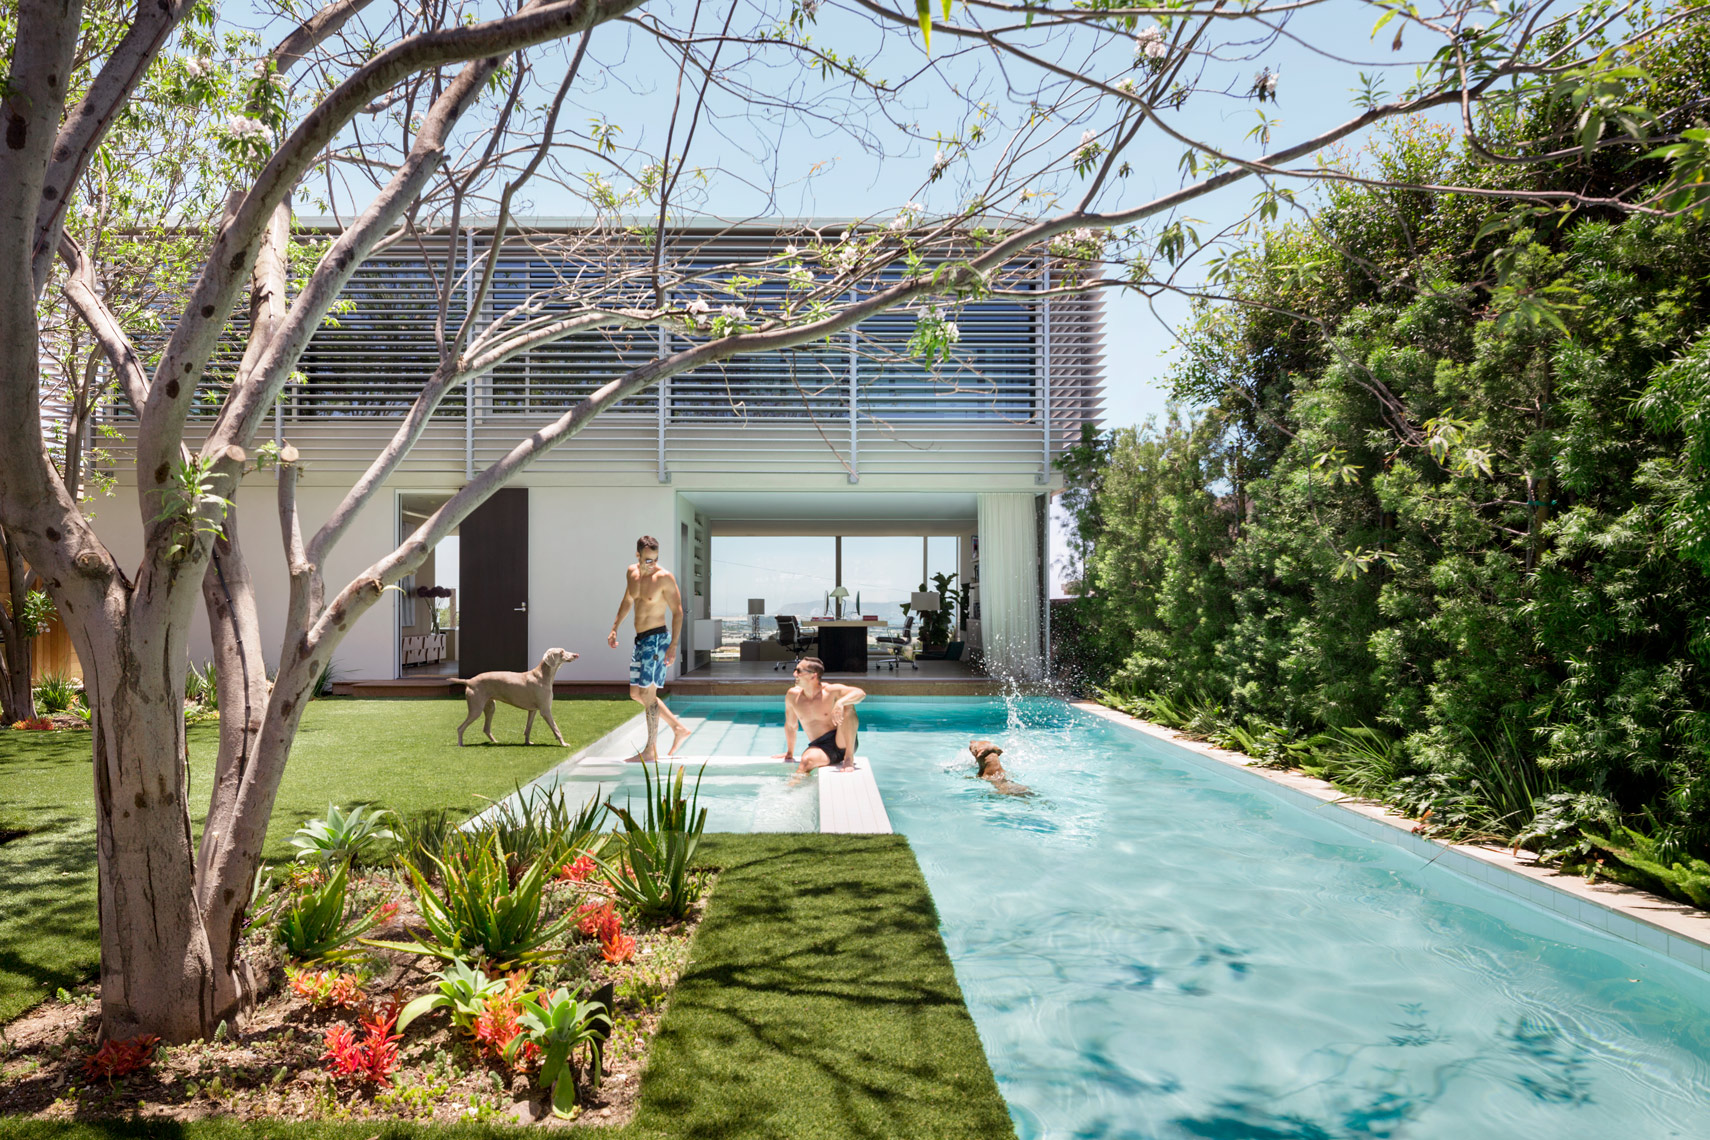 Pool, Steven Harris, San Diego, Town and Country, Modern Architecture